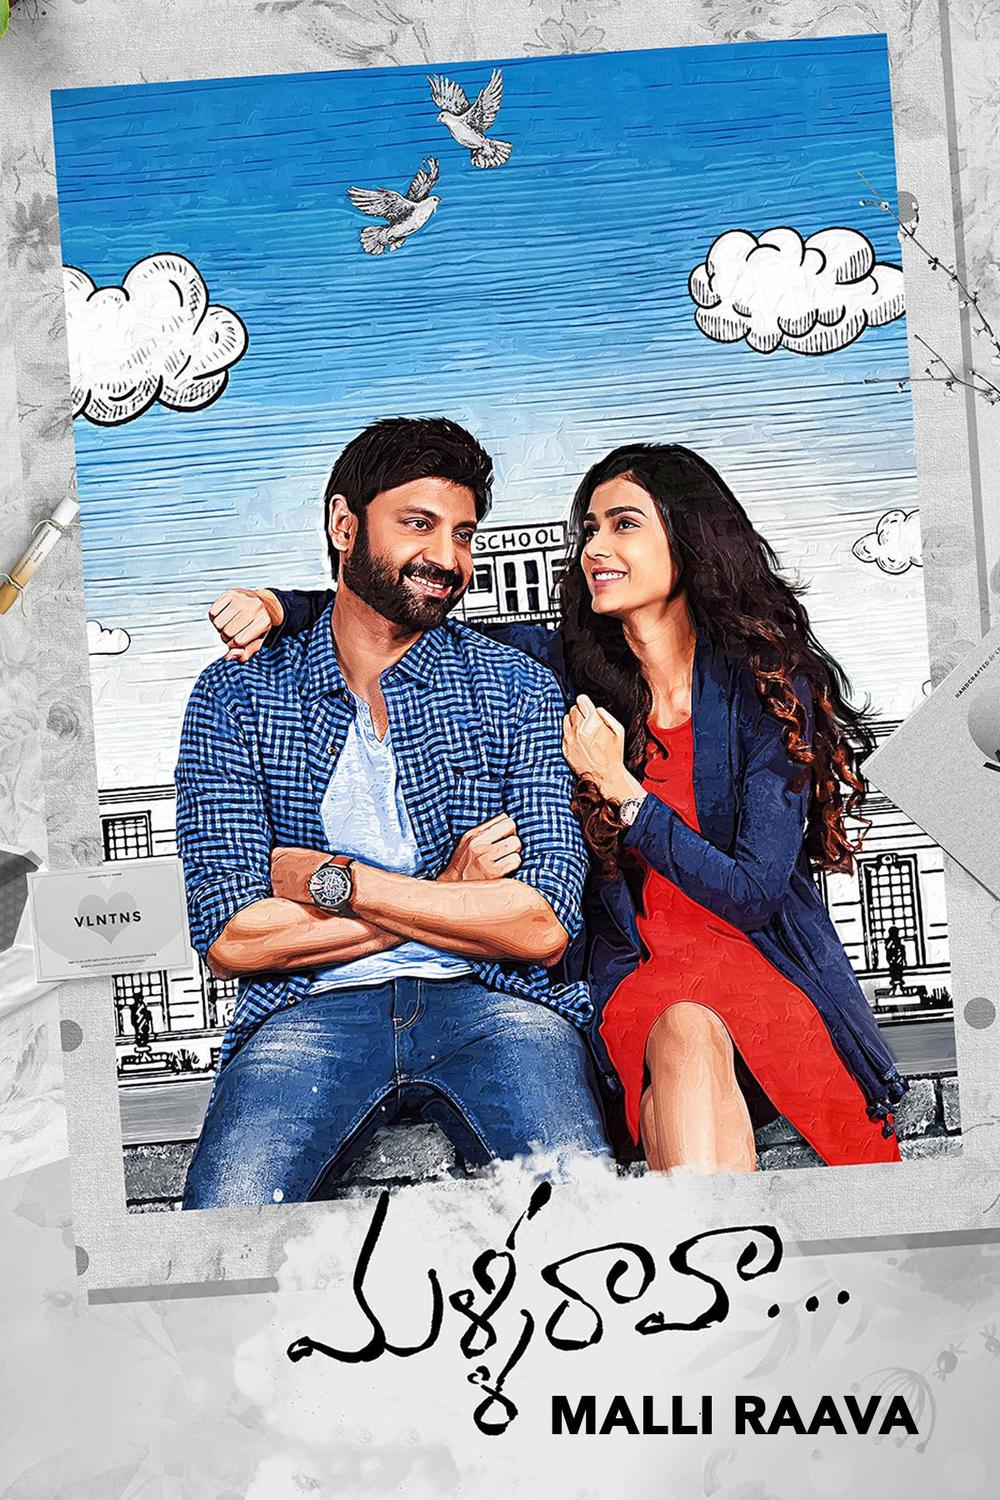 Malli raava telugu full movie download